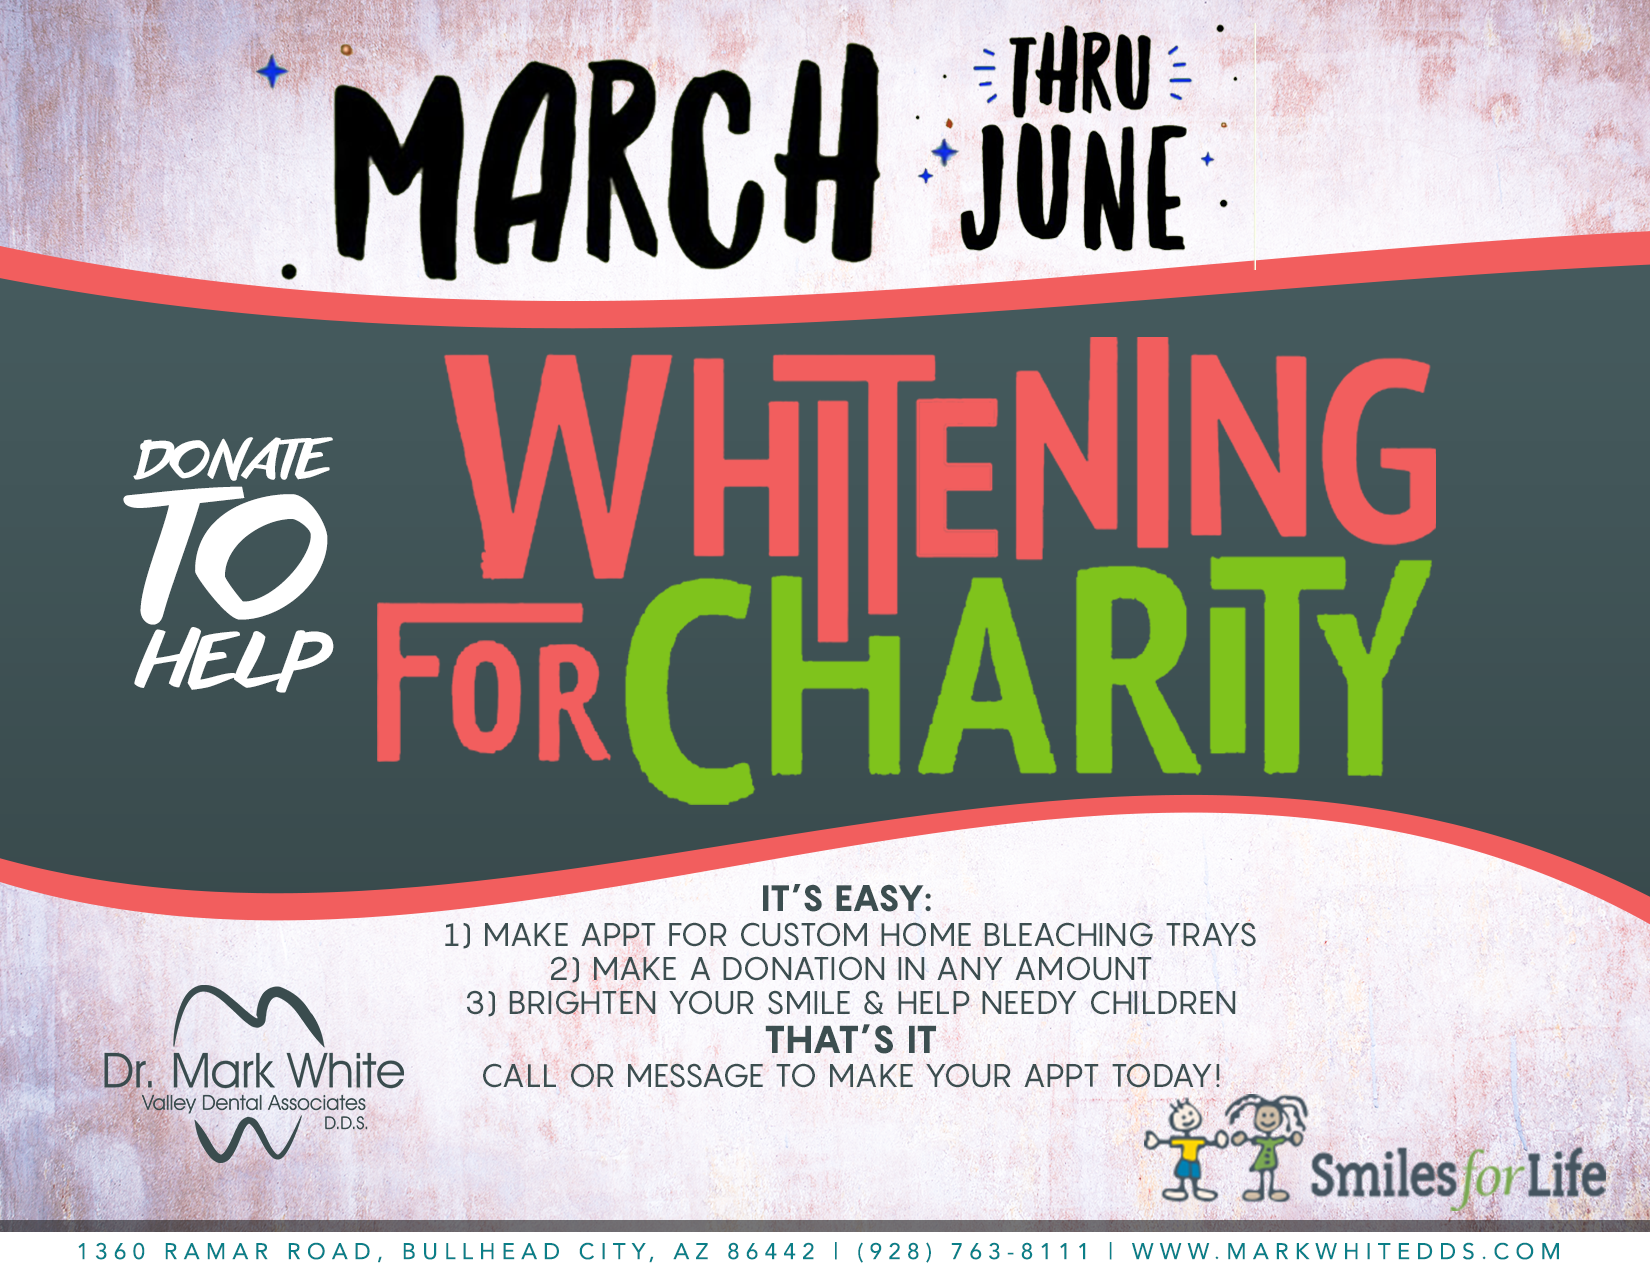 Valley Dental Associates Whitening Charity Campaign